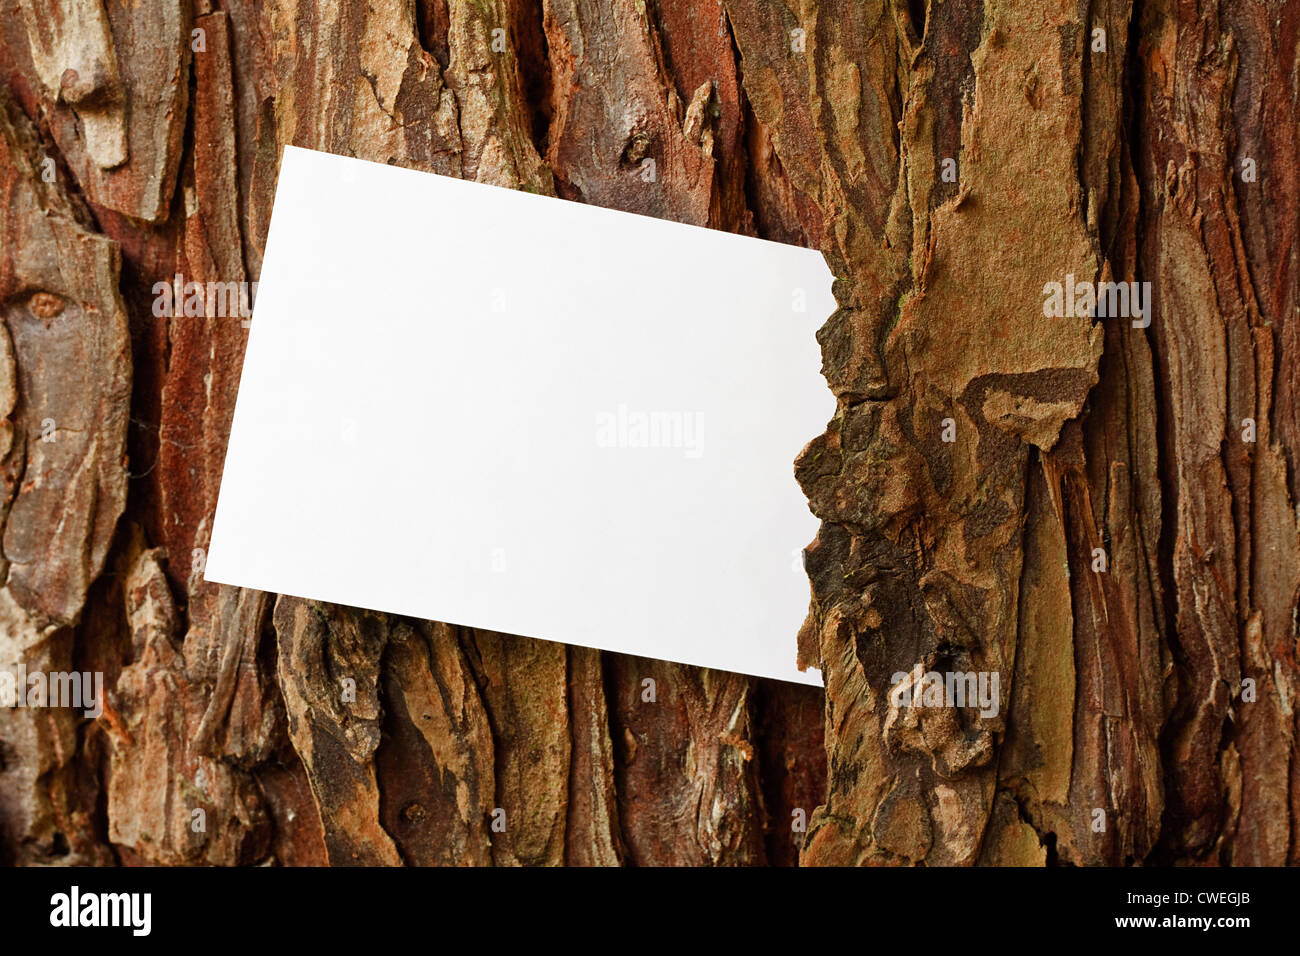 Tree Bark frame border with copy space - Stock Image